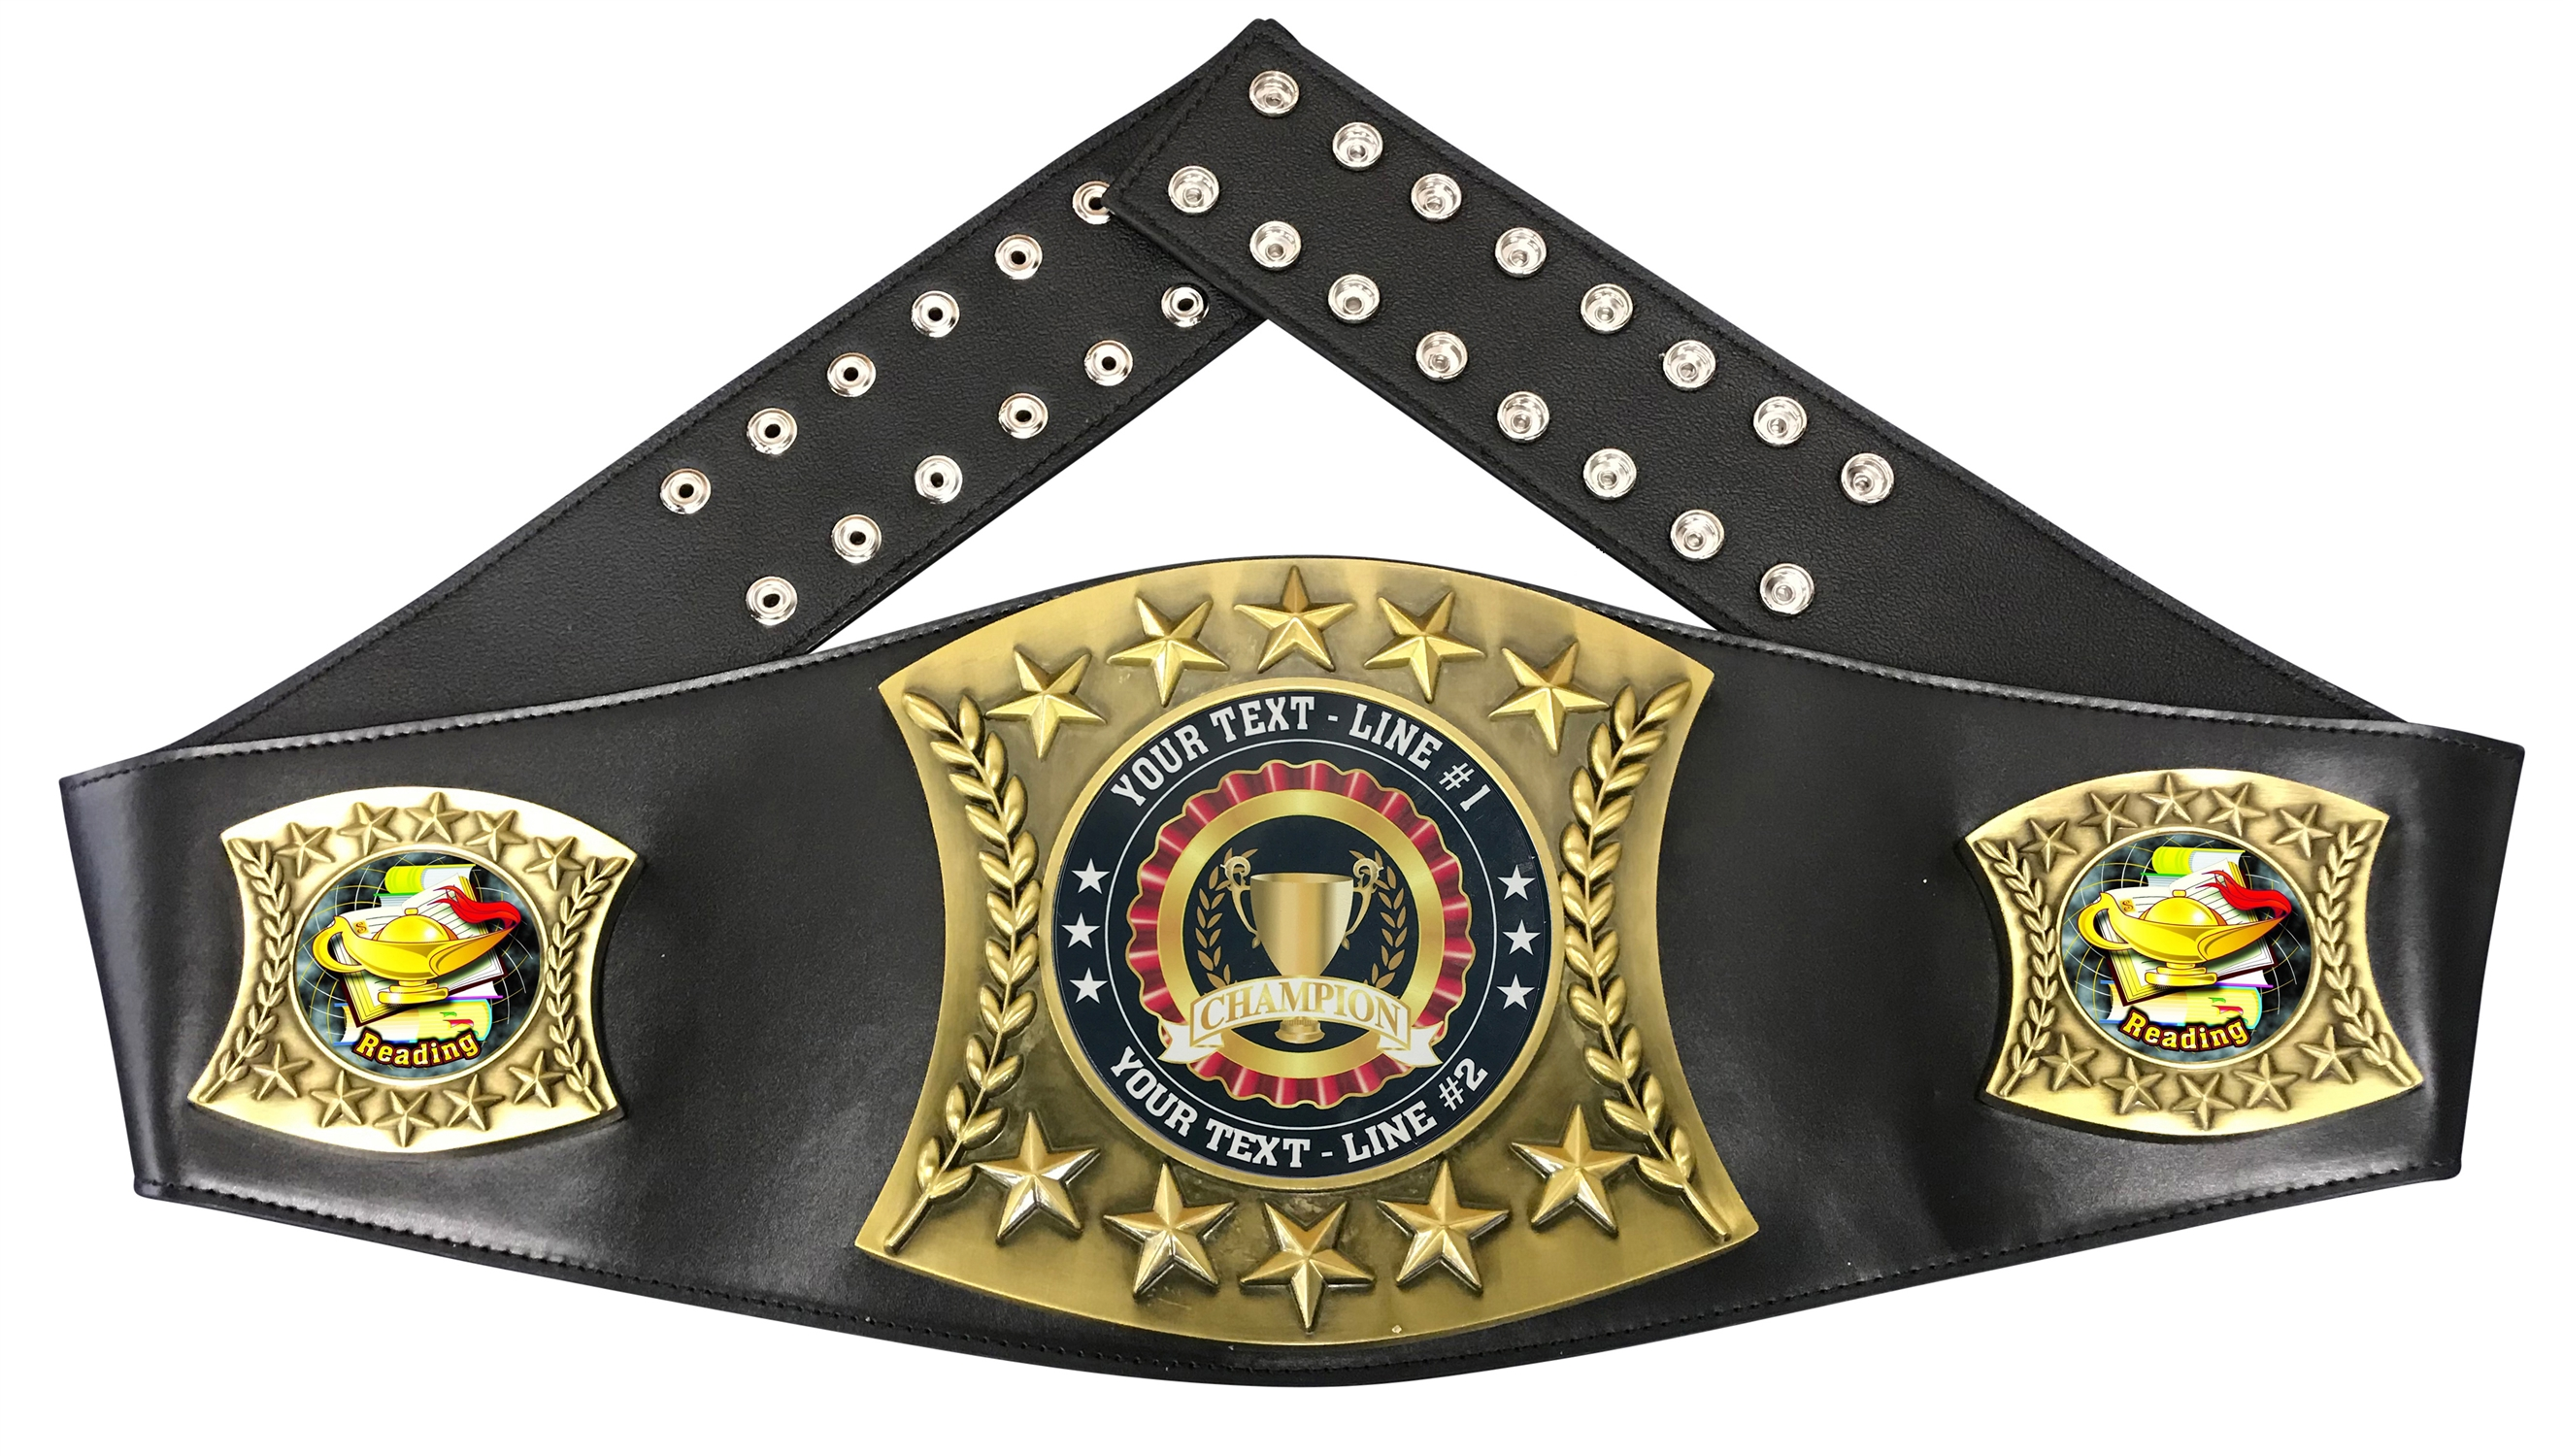 Reading Personalized Championship Leather Belt